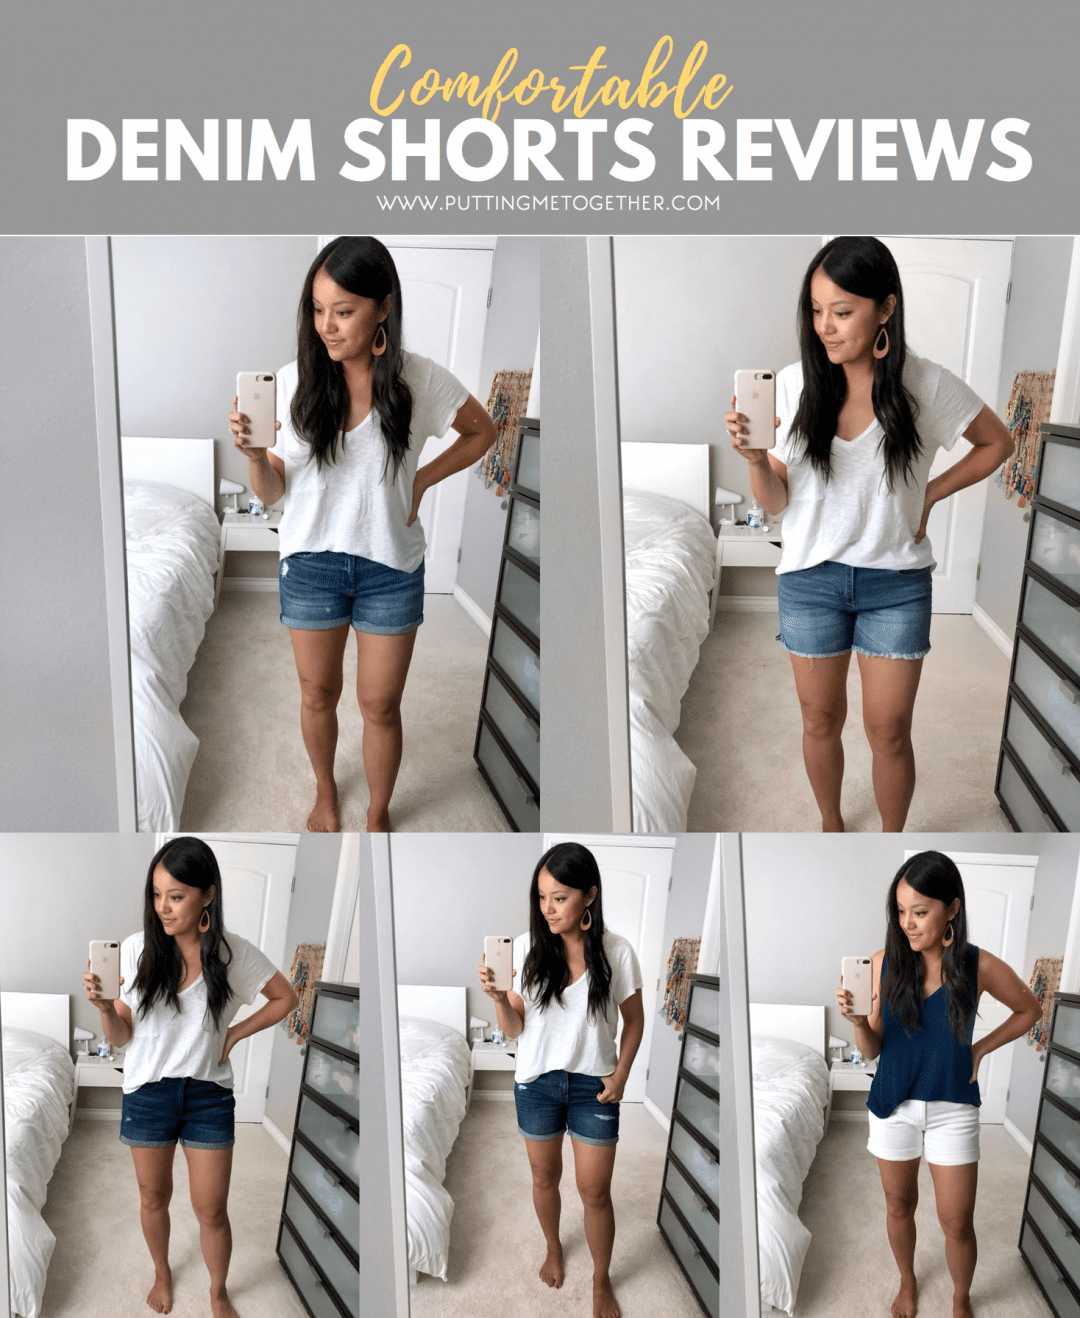 Reviews of Comfortable Denim Shorts